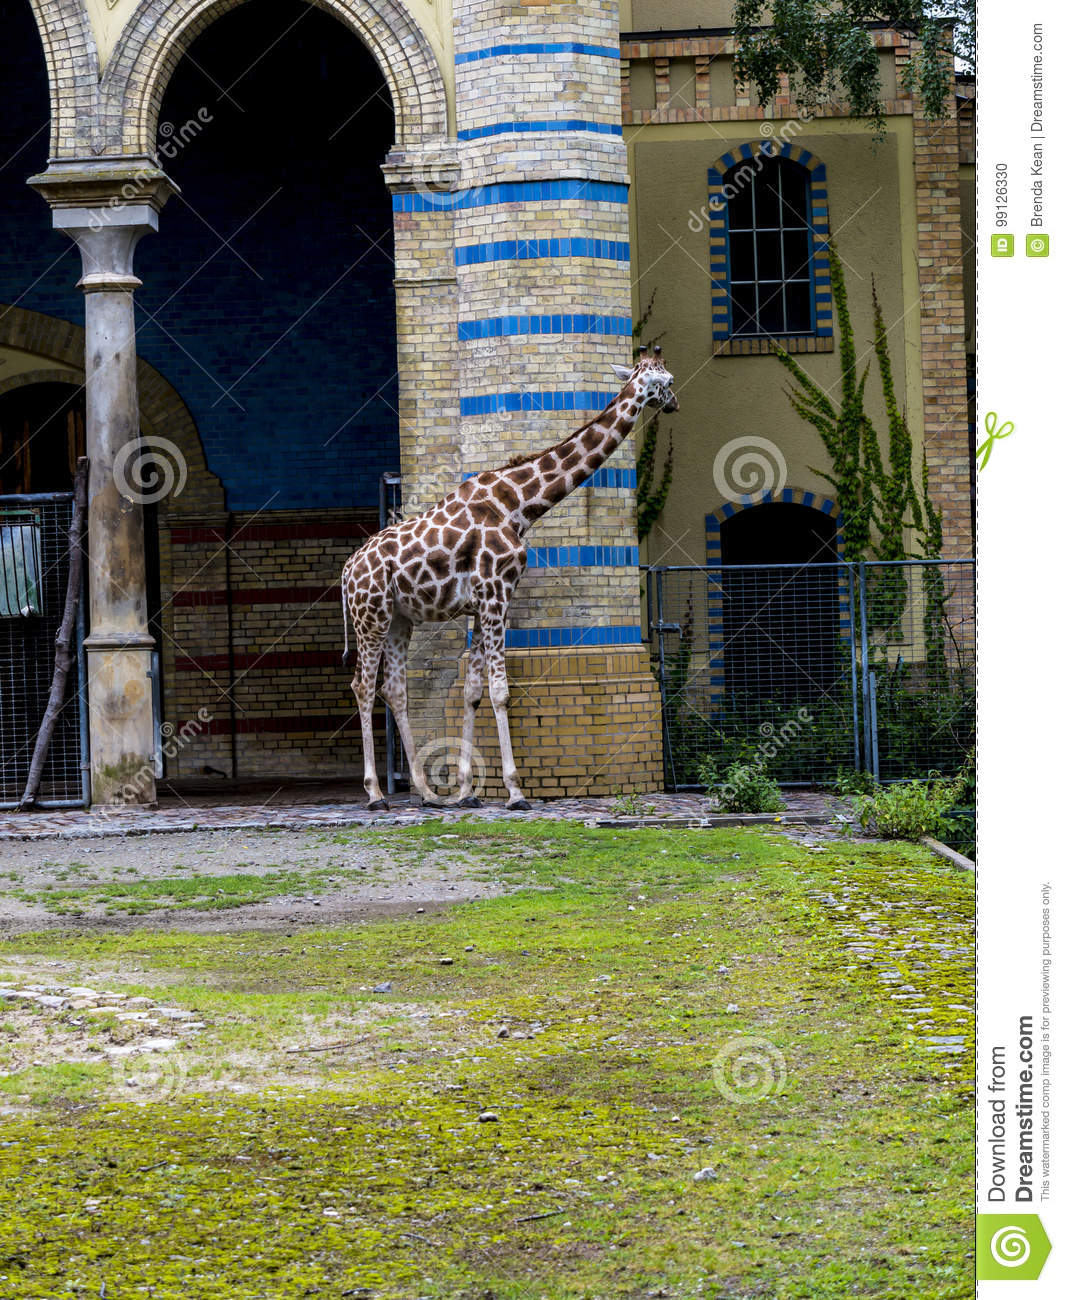 giraffe in den zoologischen g rten und aquarium in berlin germany berlin zoo ist der besichtigte. Black Bedroom Furniture Sets. Home Design Ideas